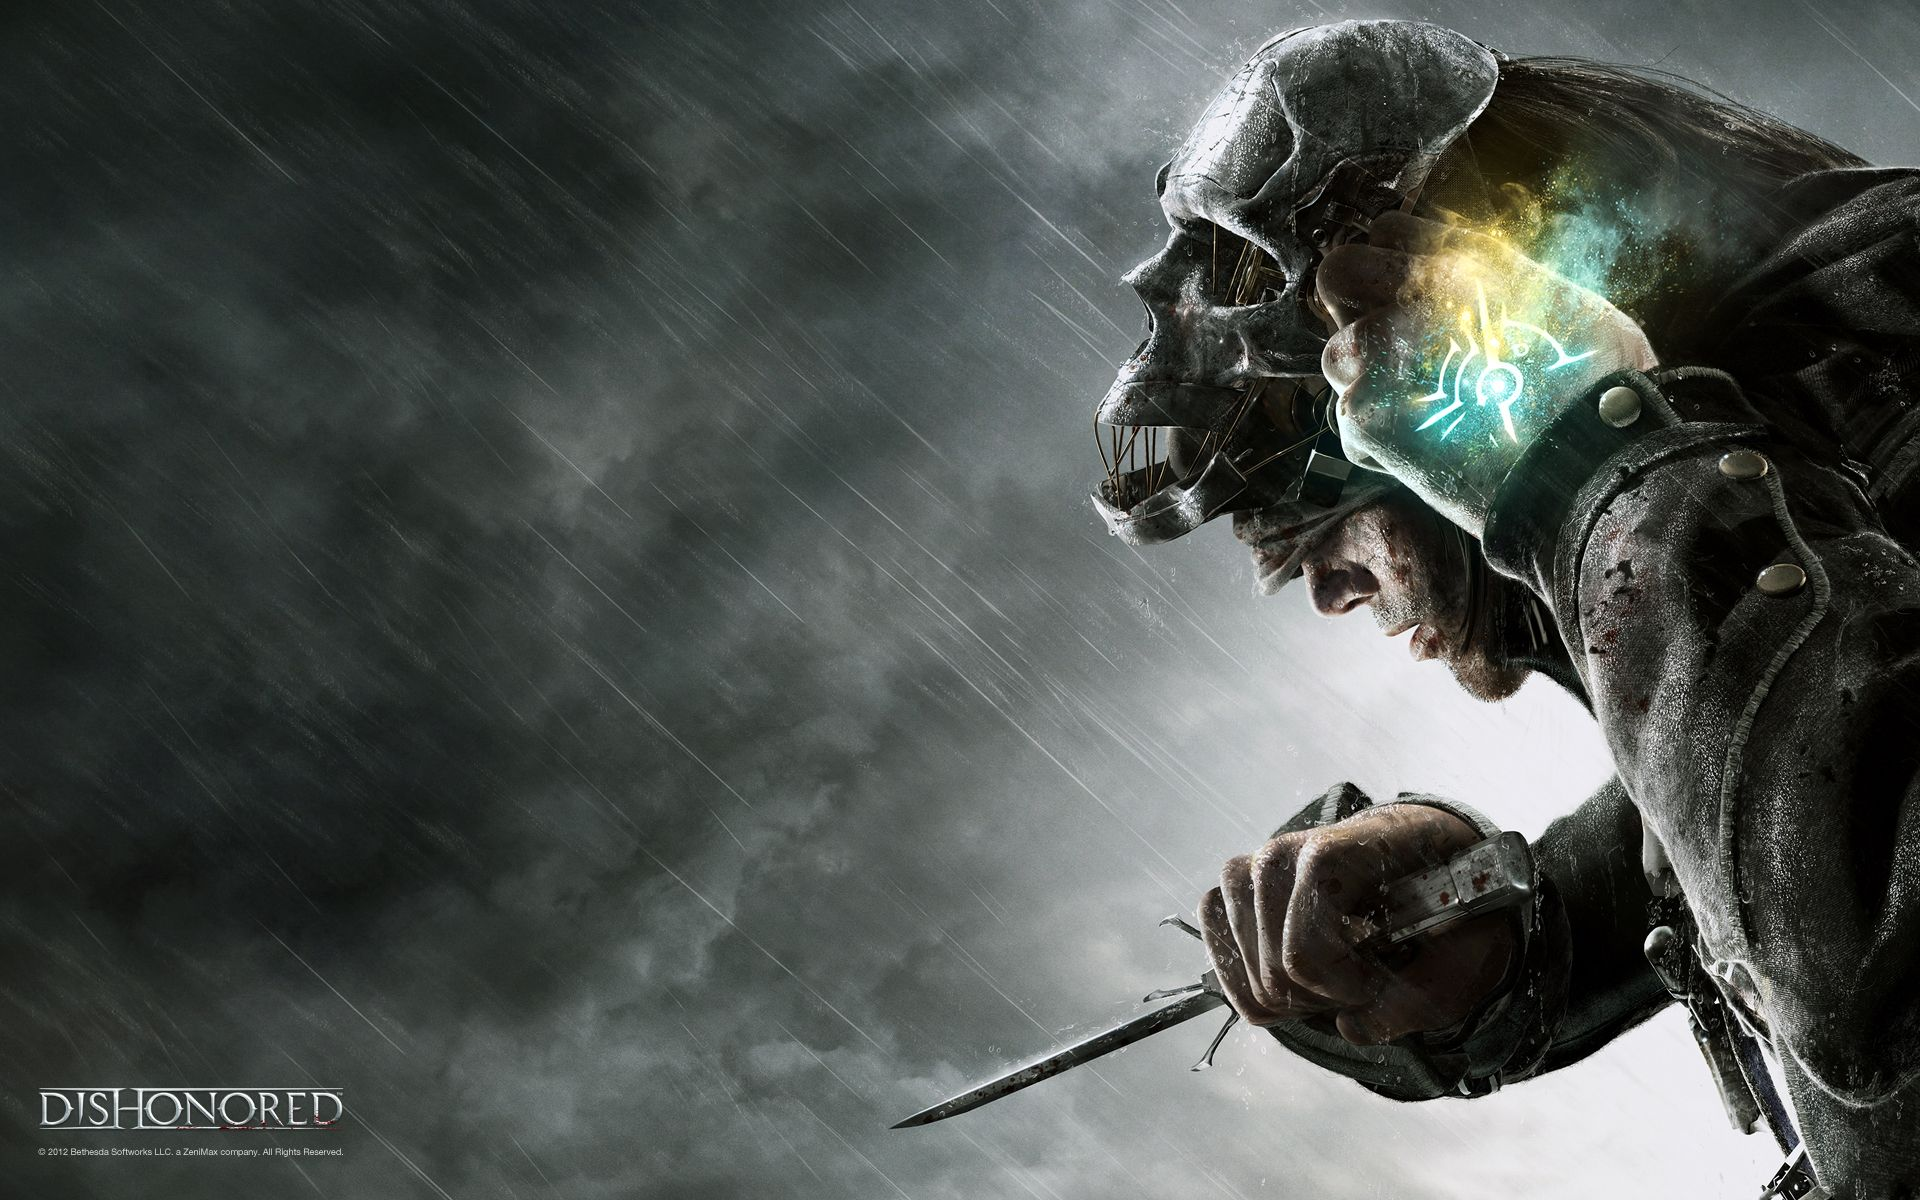 Image Detail For Dishonored Game Wallpapers